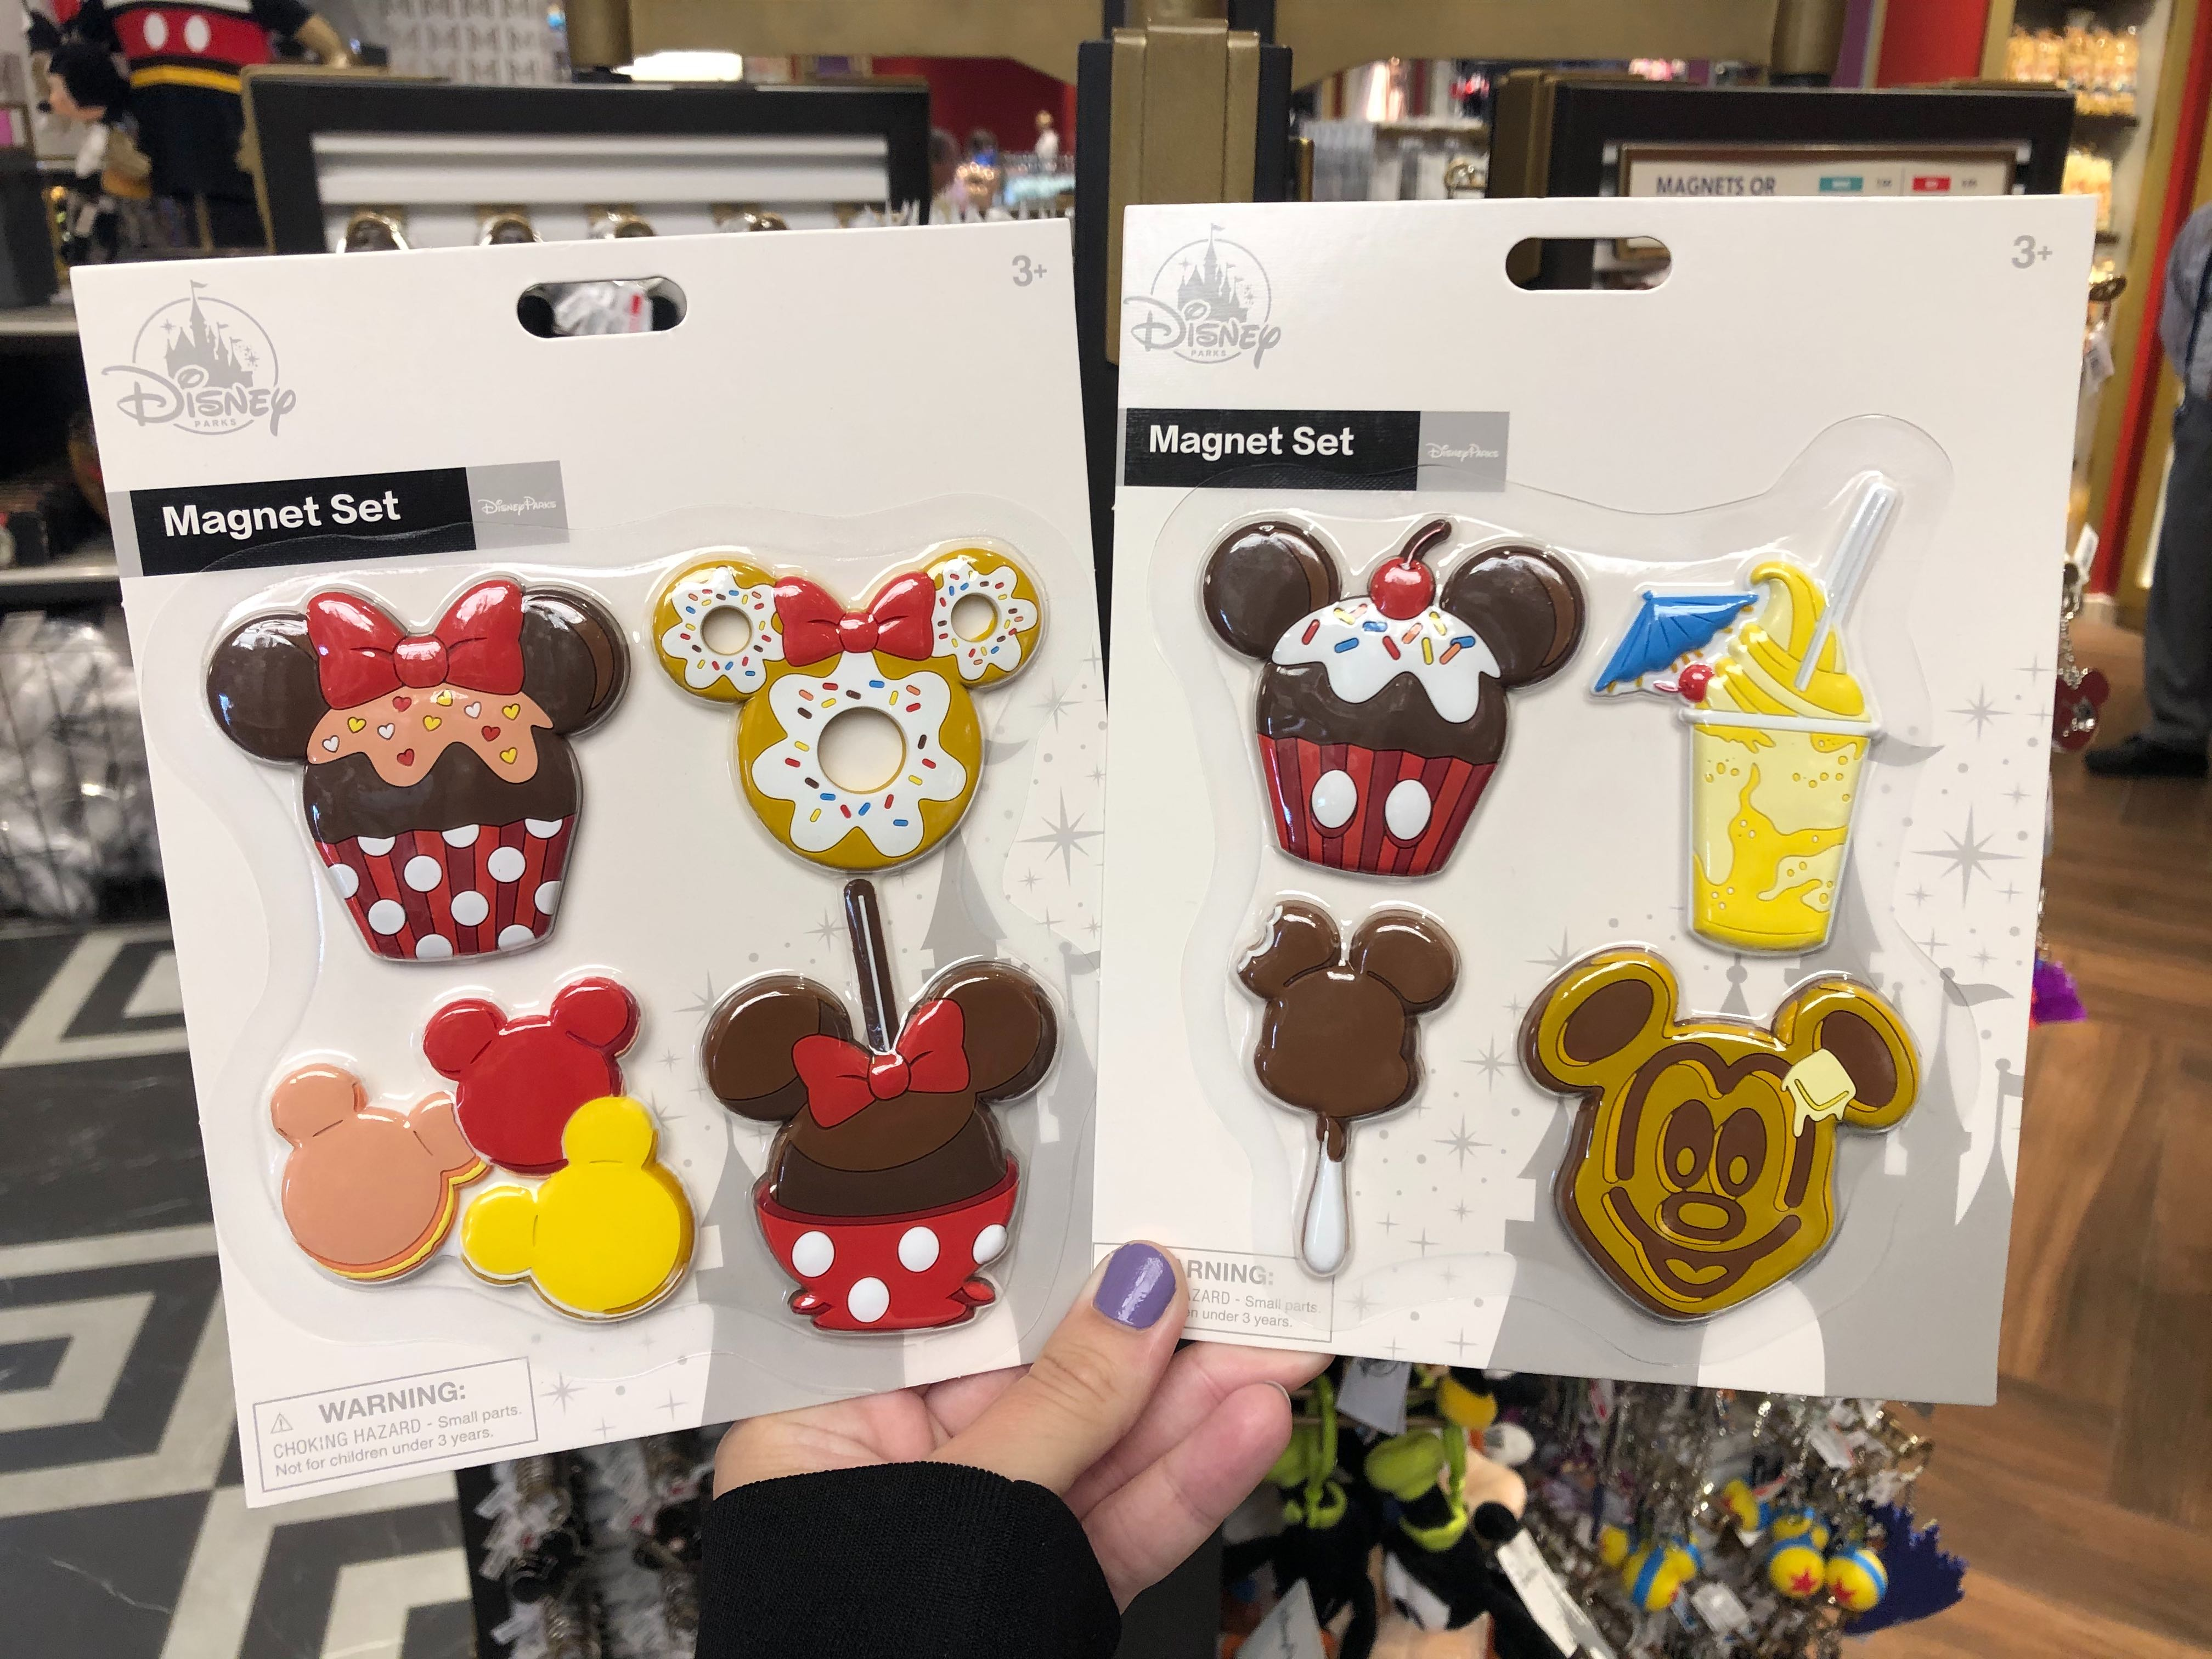 Minnie Mouse and Disney Park Snacks Magnet Sets